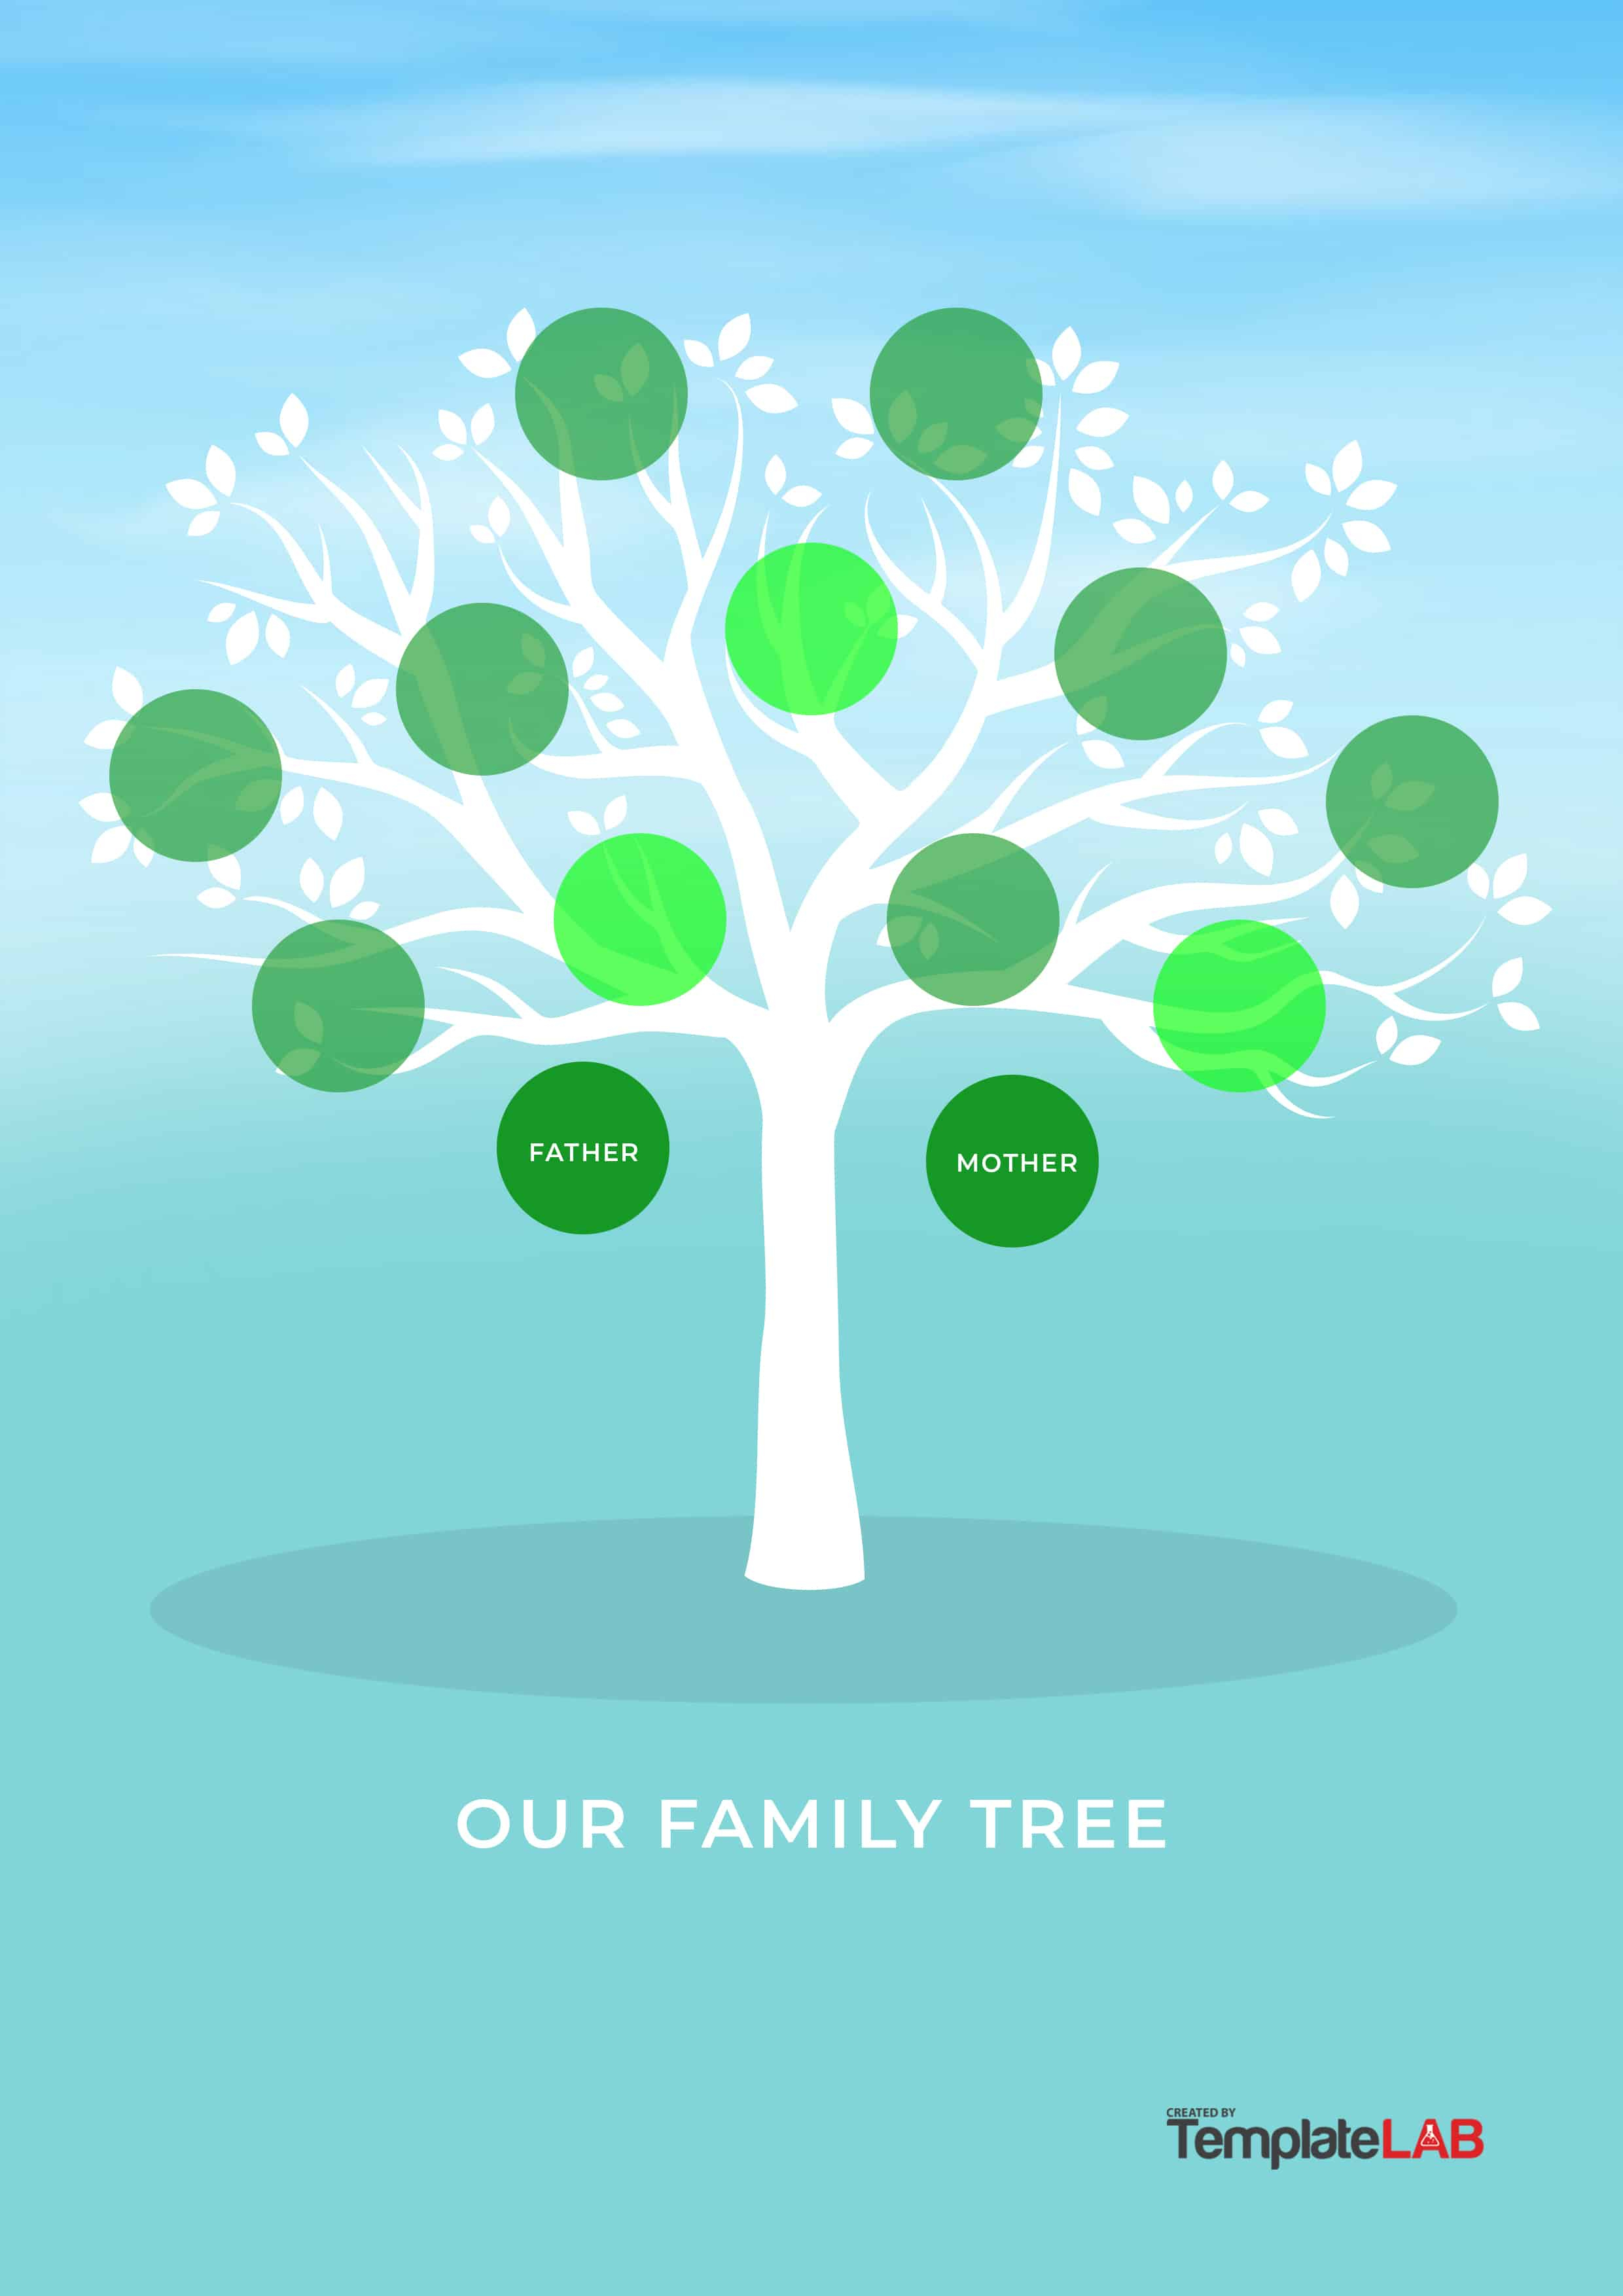 50+ Free Family Tree Templates (Word, Excel, Pdf) - Template Lab - Free Printable Family Tree Template